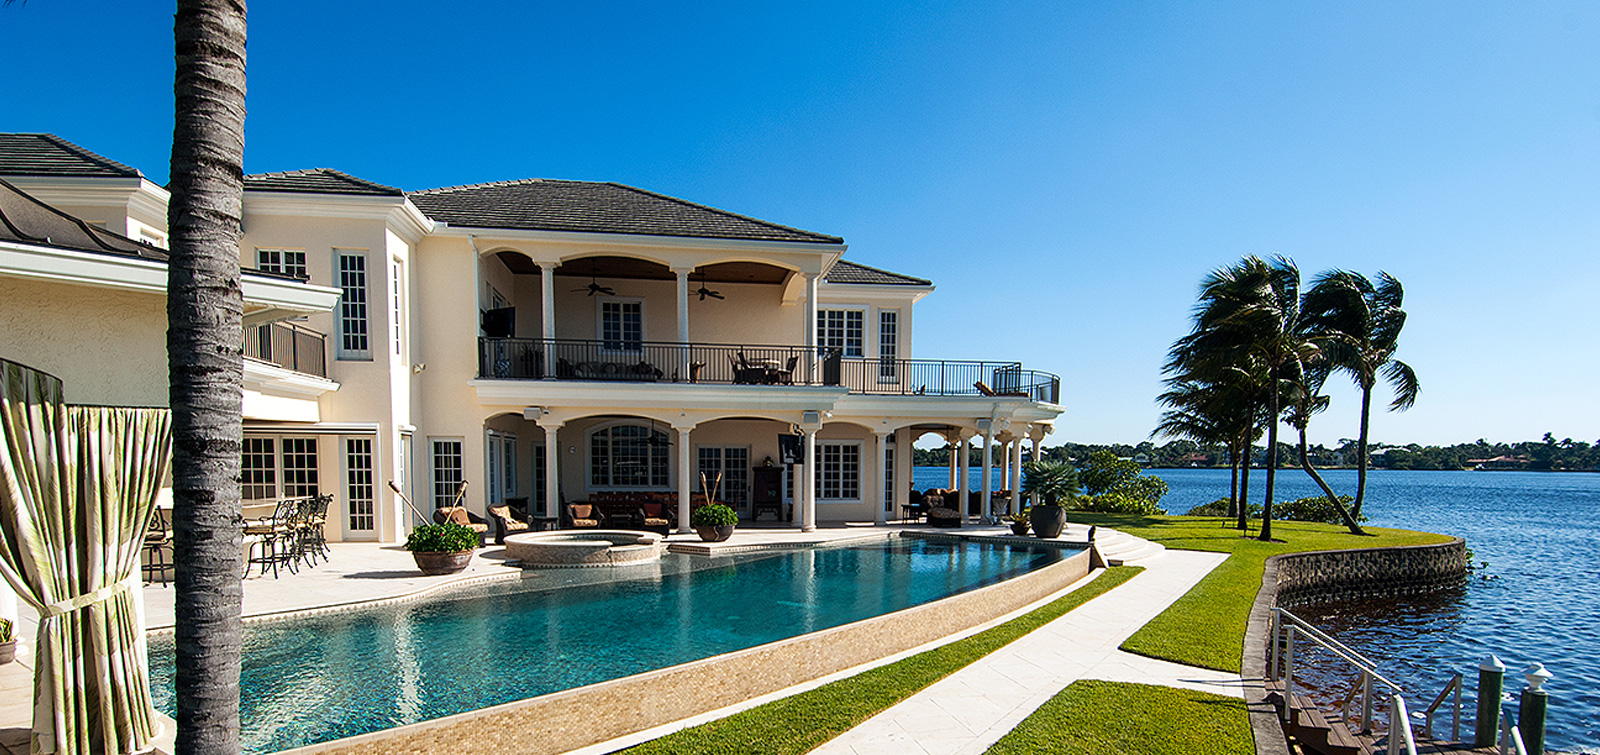 drew saporito north palm beach real estate and homes for